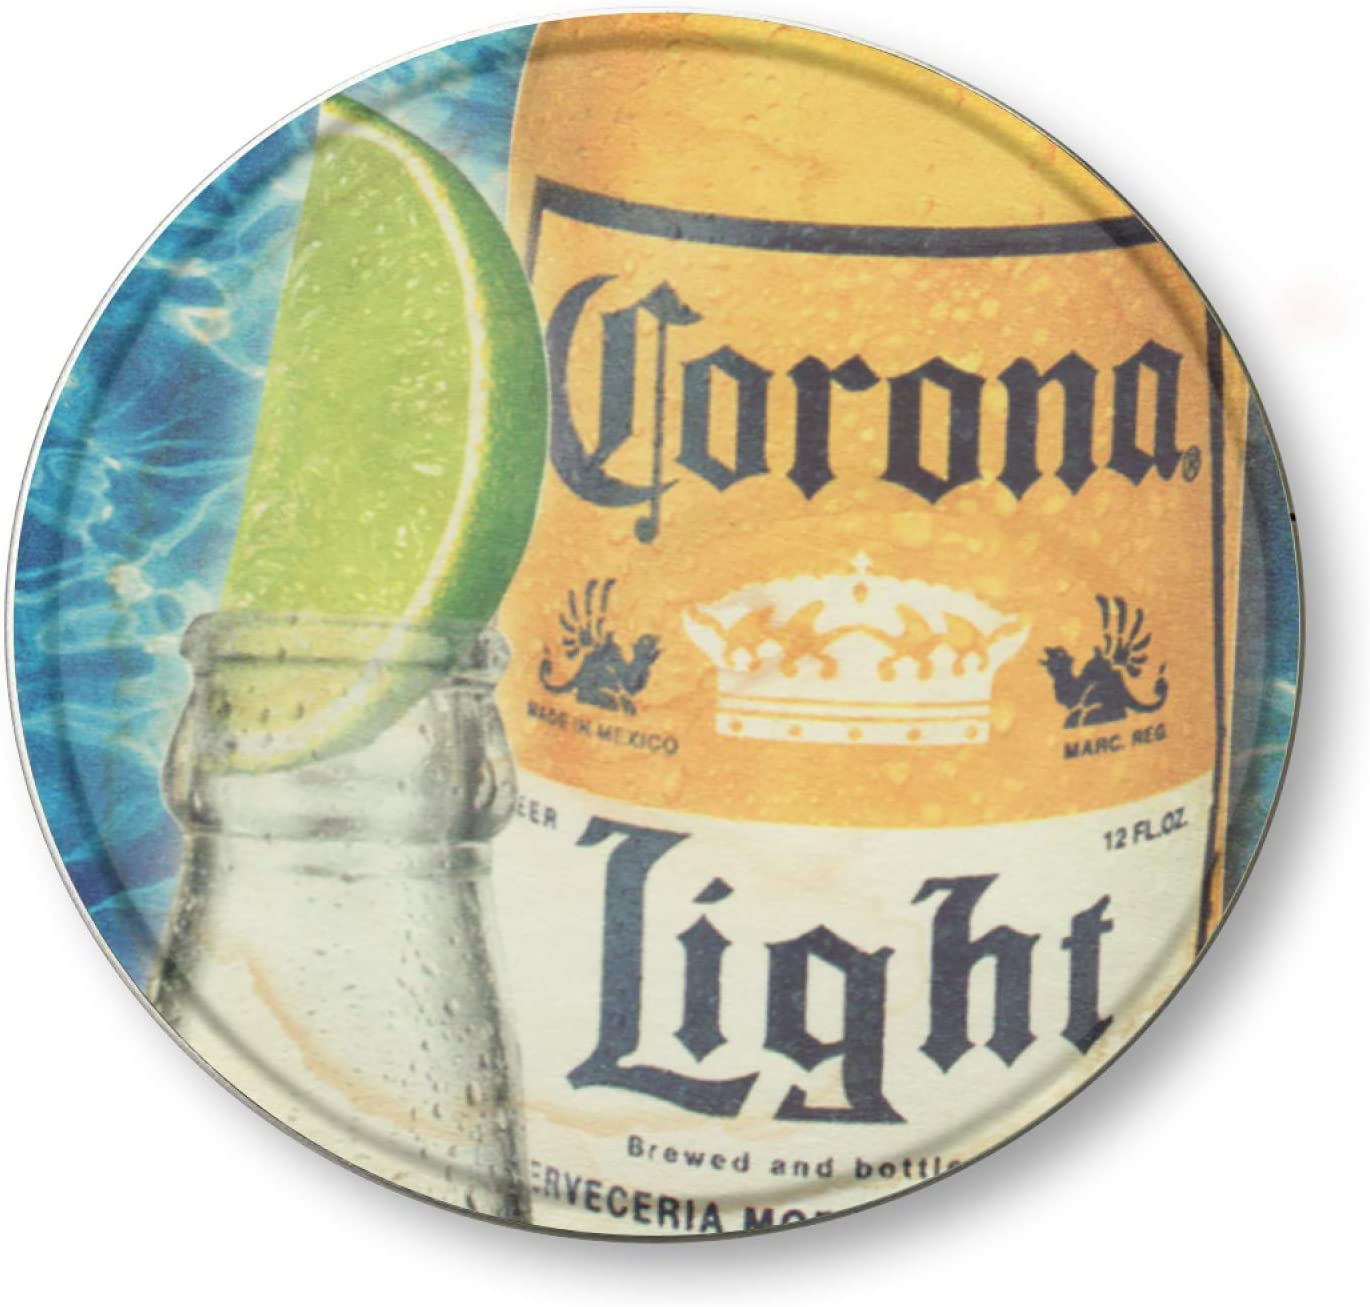 Ovonetune Corona Beer Bar Vintage Style Concave Round Tin Sign, Retro Metal Round Tin Signs Decor Wall Art Posters Gifts for Door Plaque Home Bars Clubs Cafes, 12X12 Inches